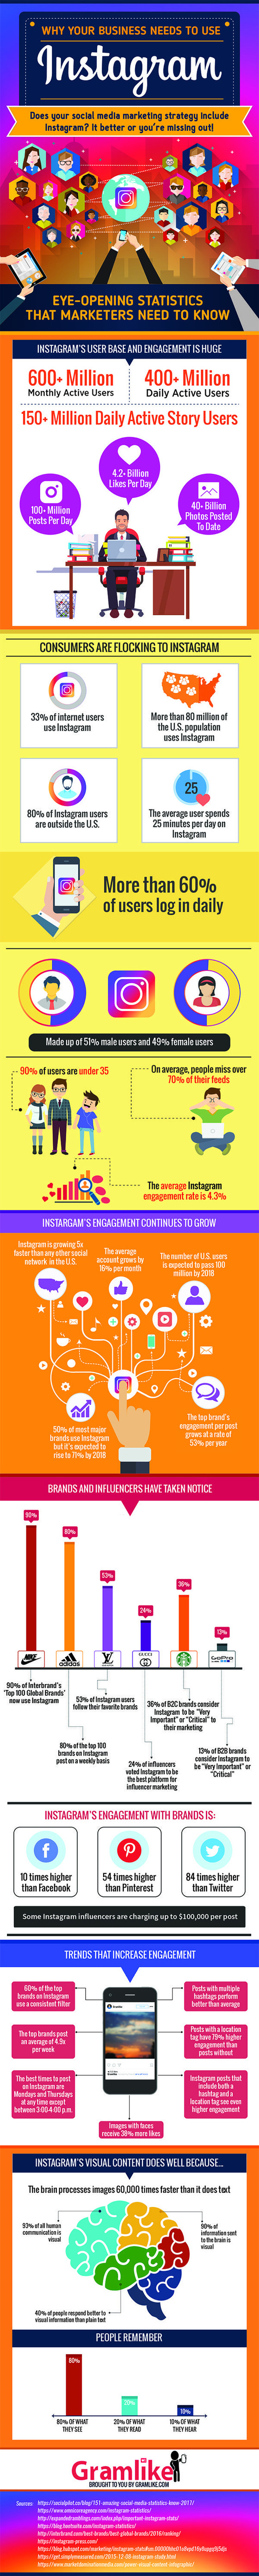 Why Your Business Needs to Use Instagram in 2017 [Infographic]